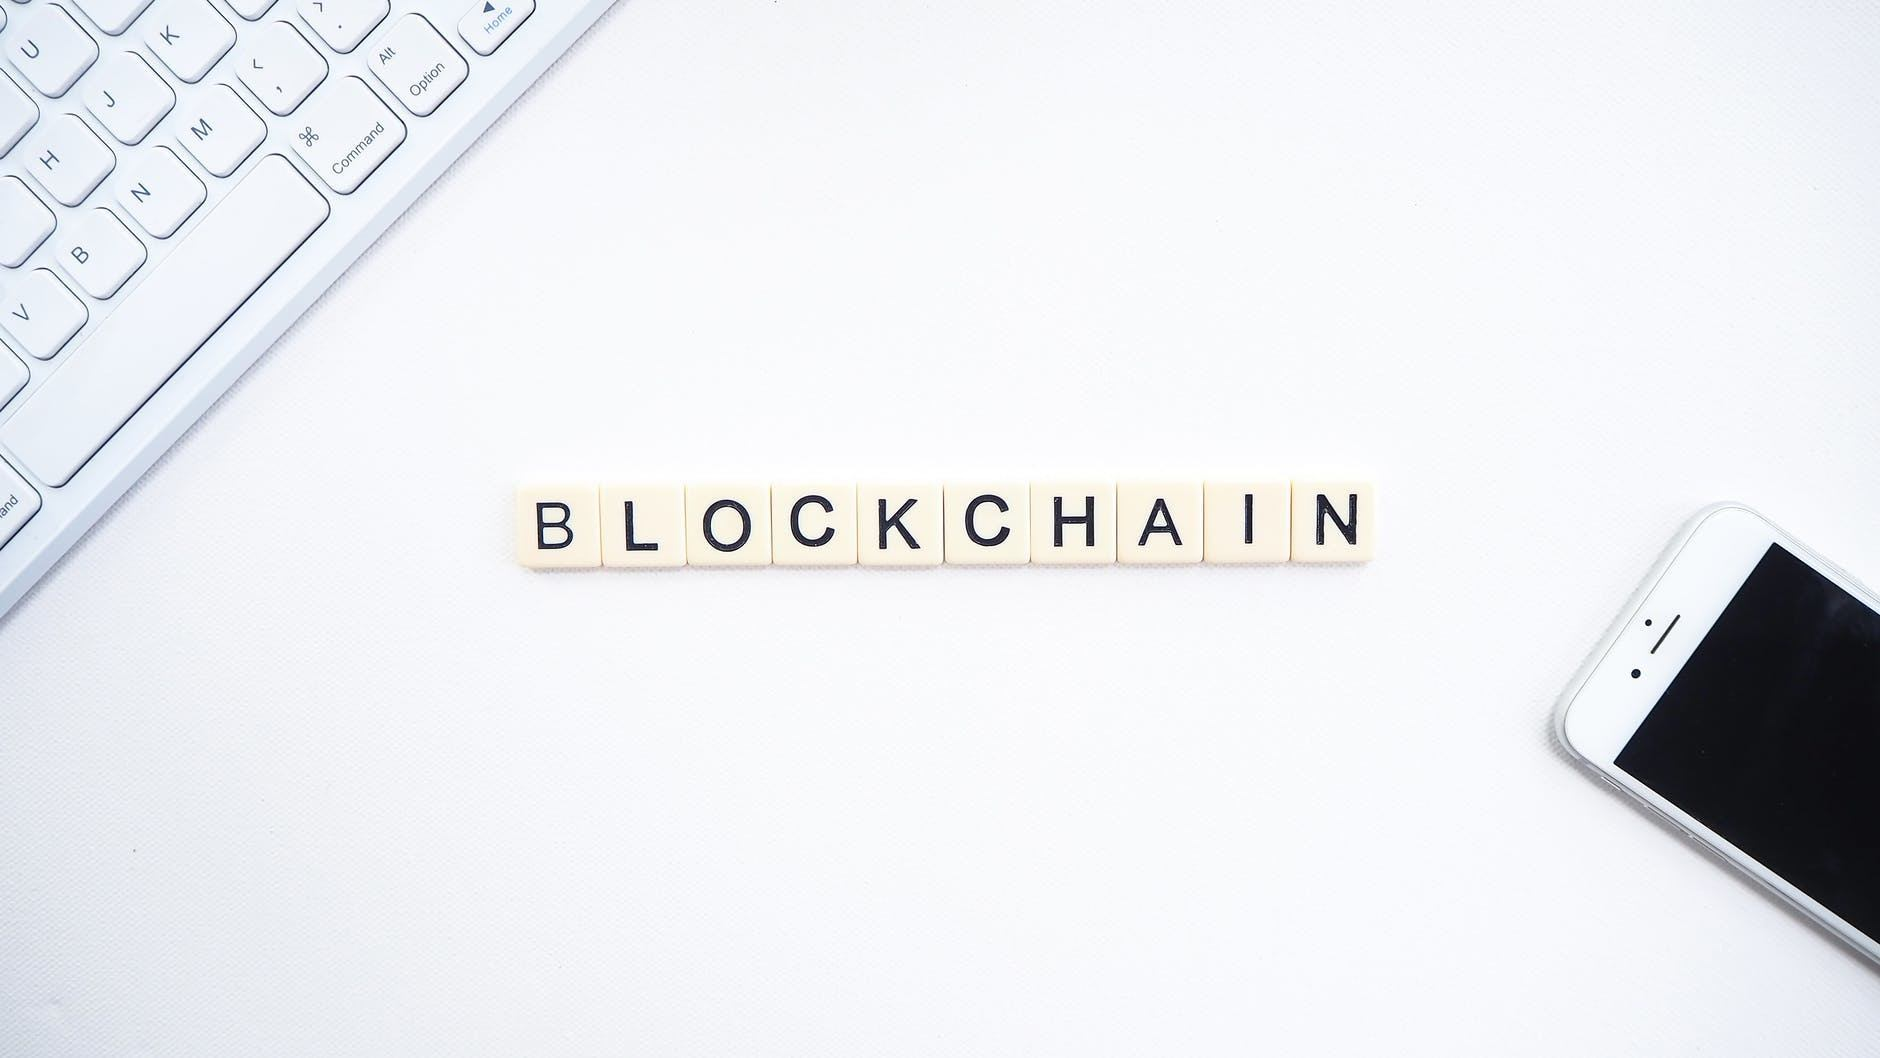 The Ledger is at the Heart of Blockchain